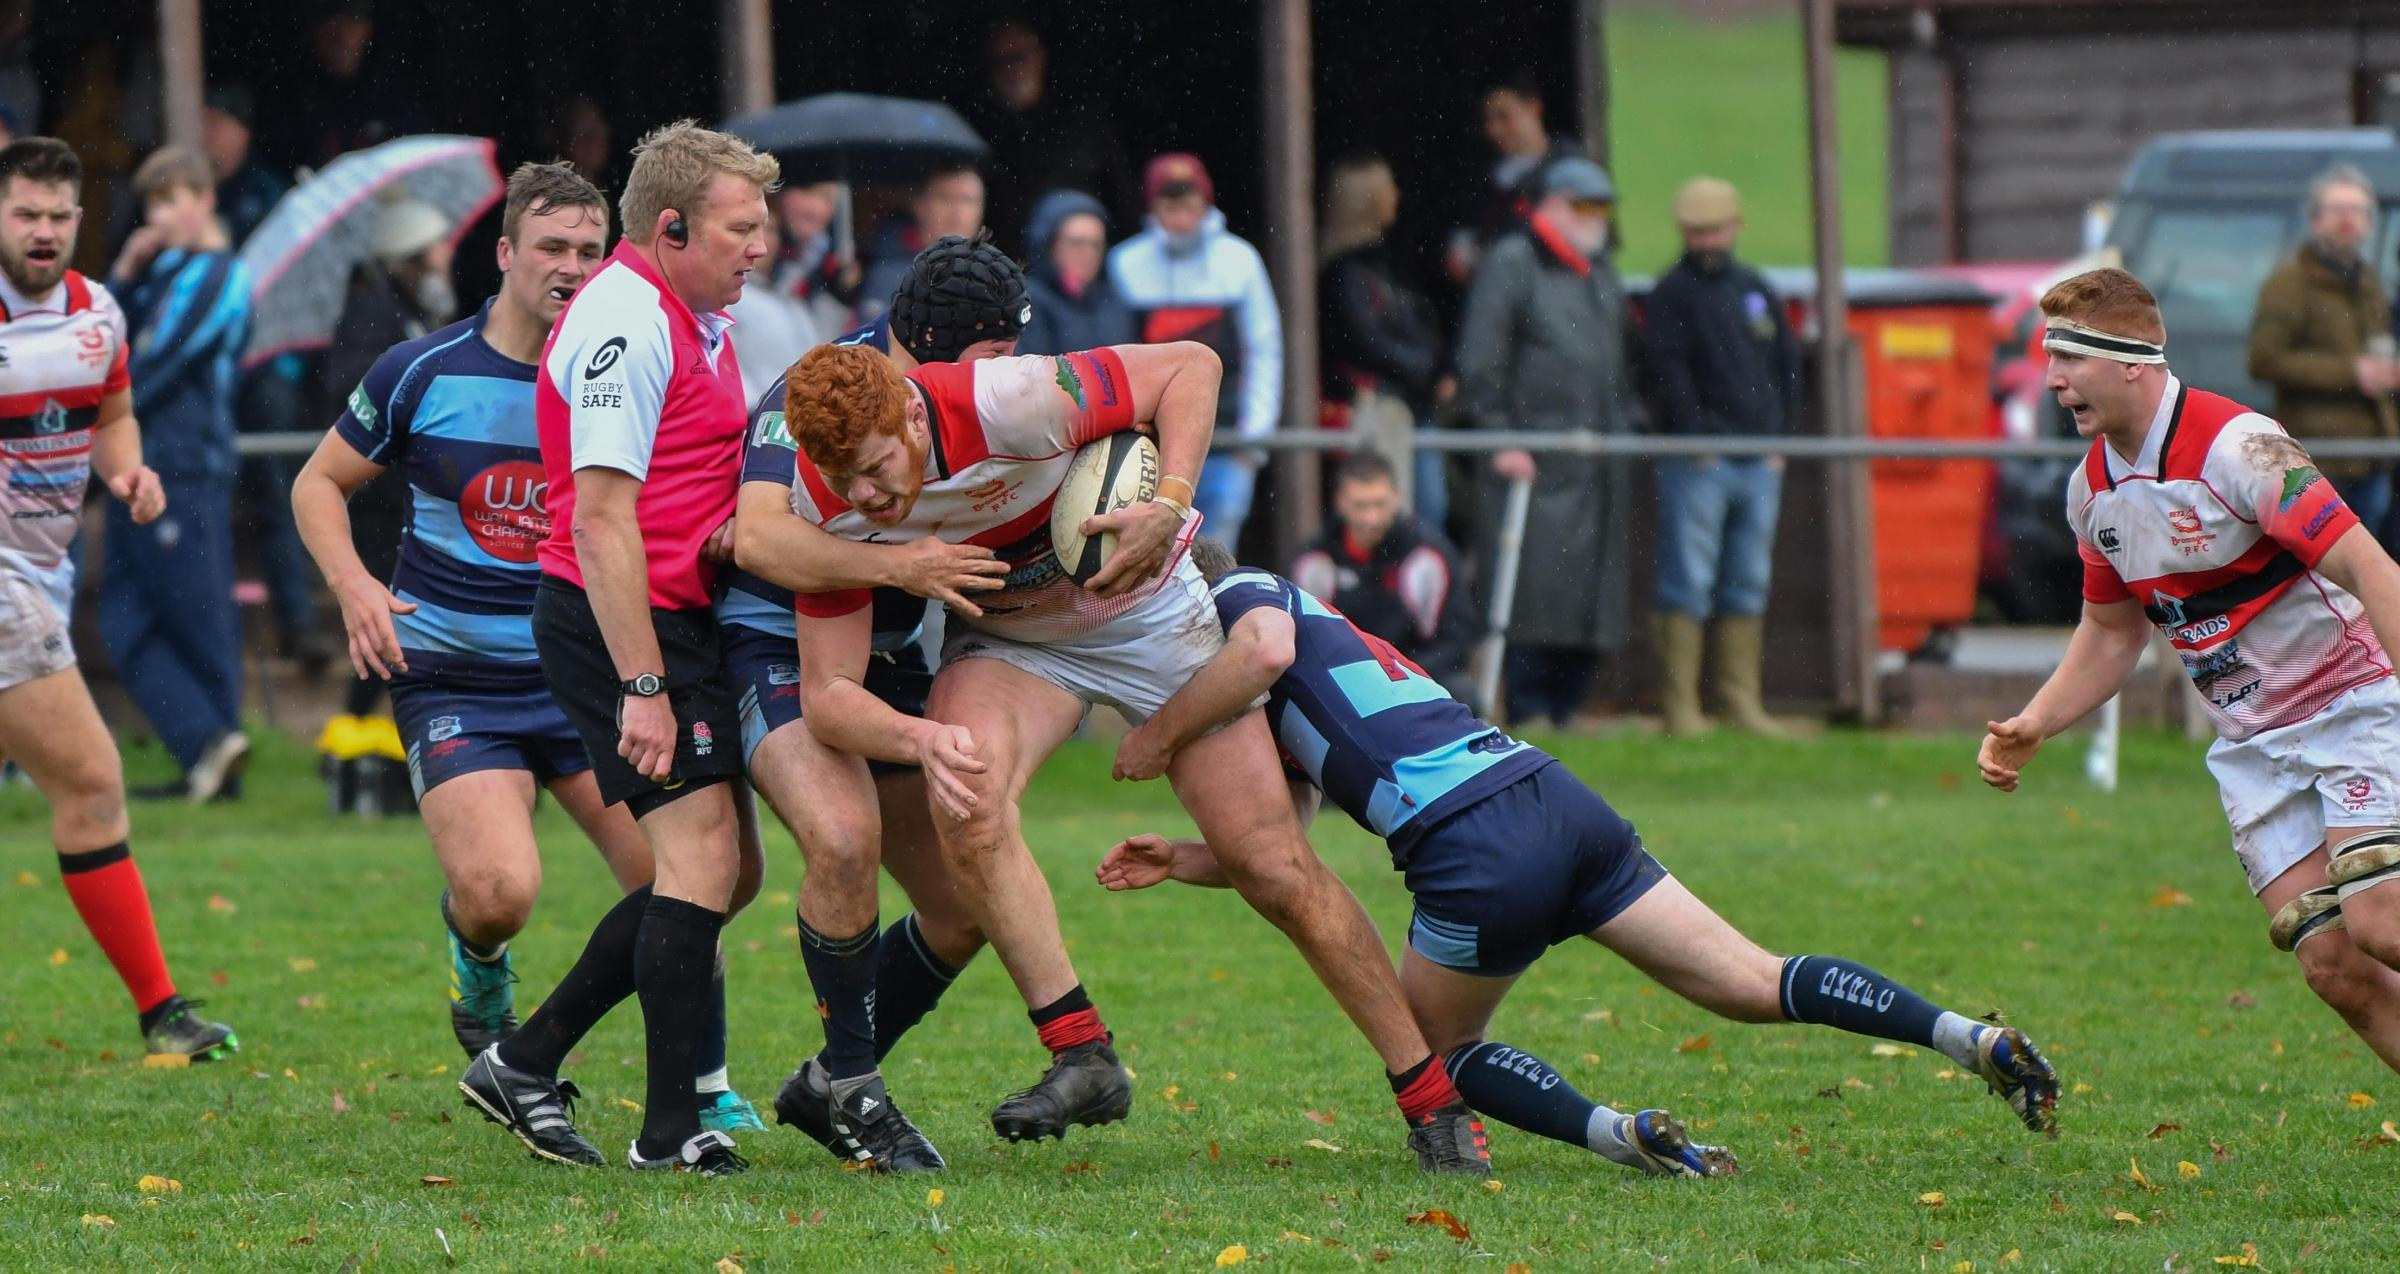 No way through for Bromsgrove's Sam Knott  against DK. Picture: Andy Jepson